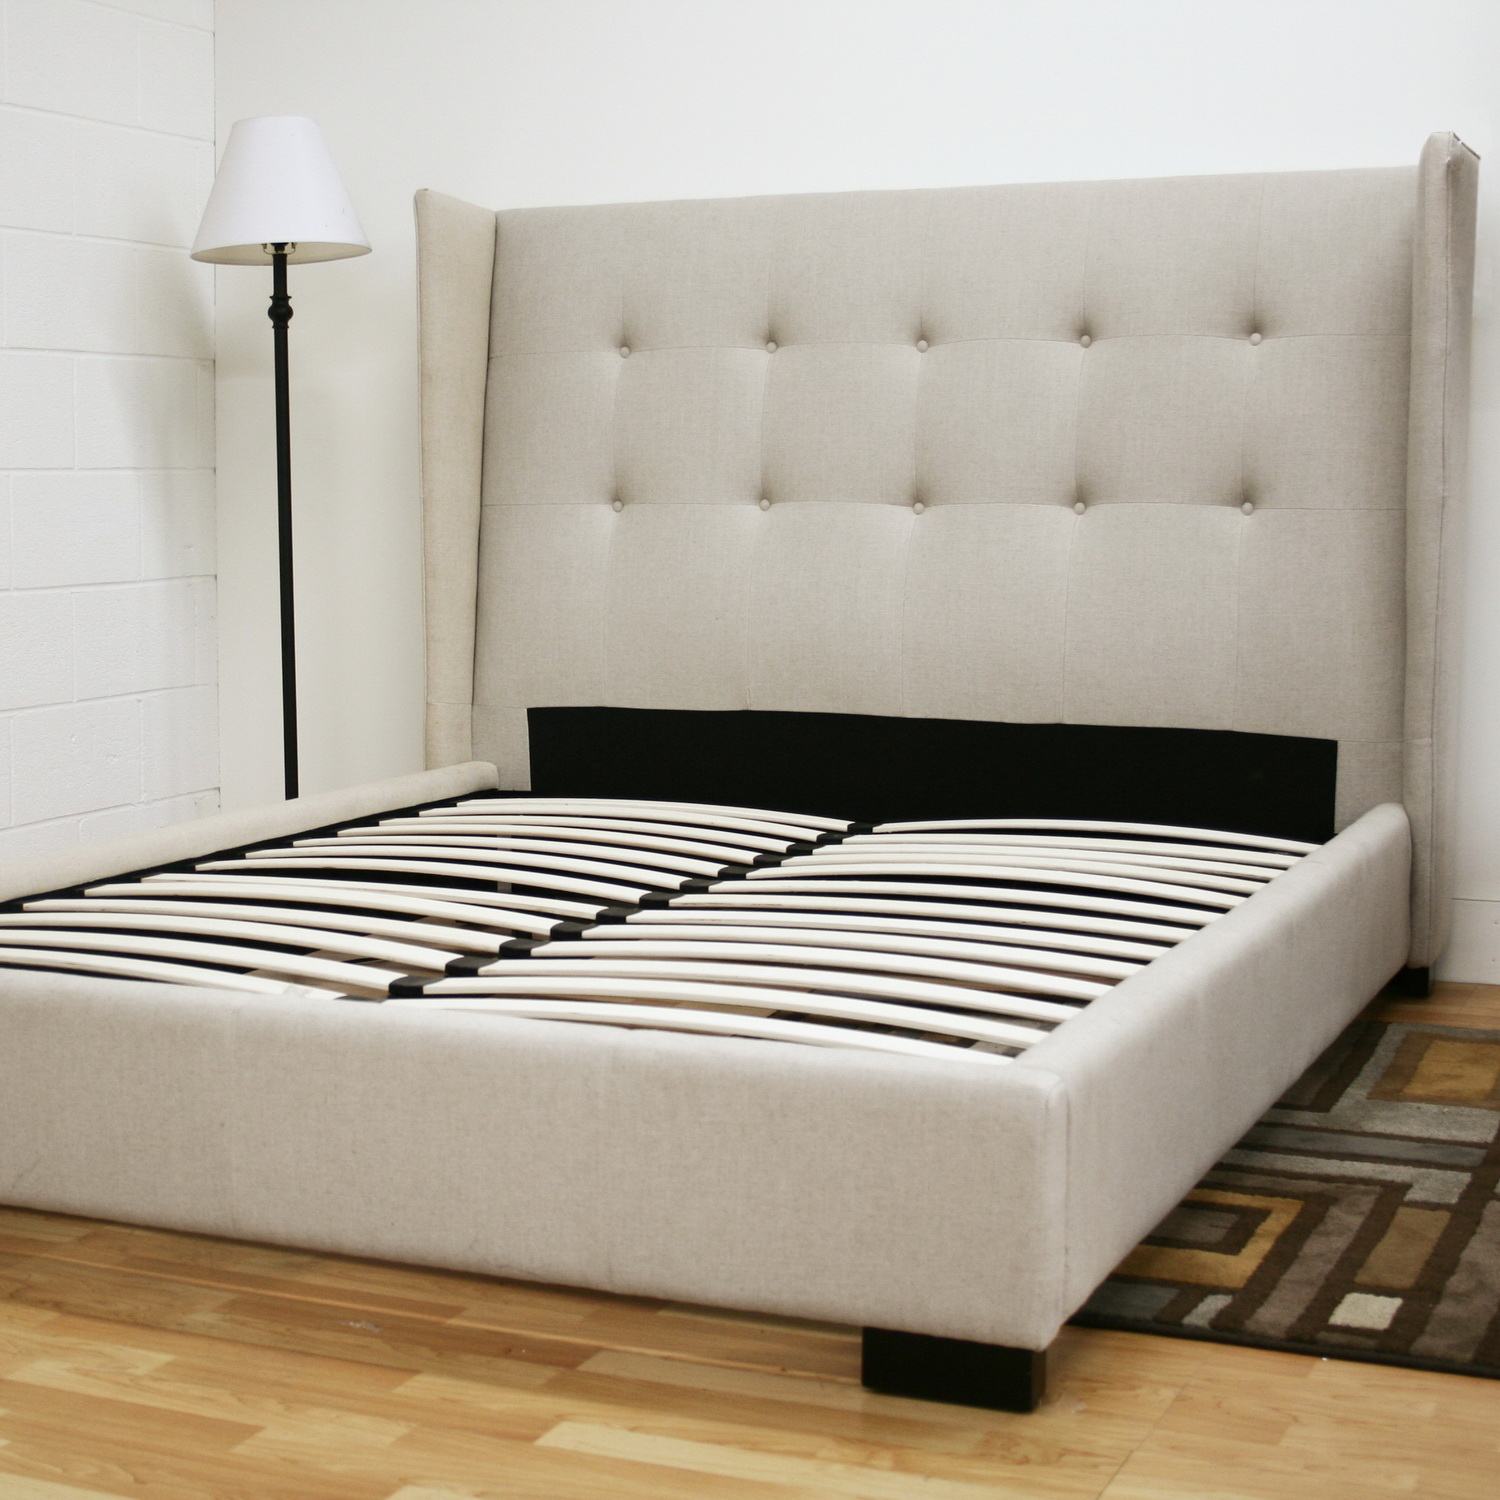 Furniture > Bedroom Furniture > Bed Frame > Queen Size ...